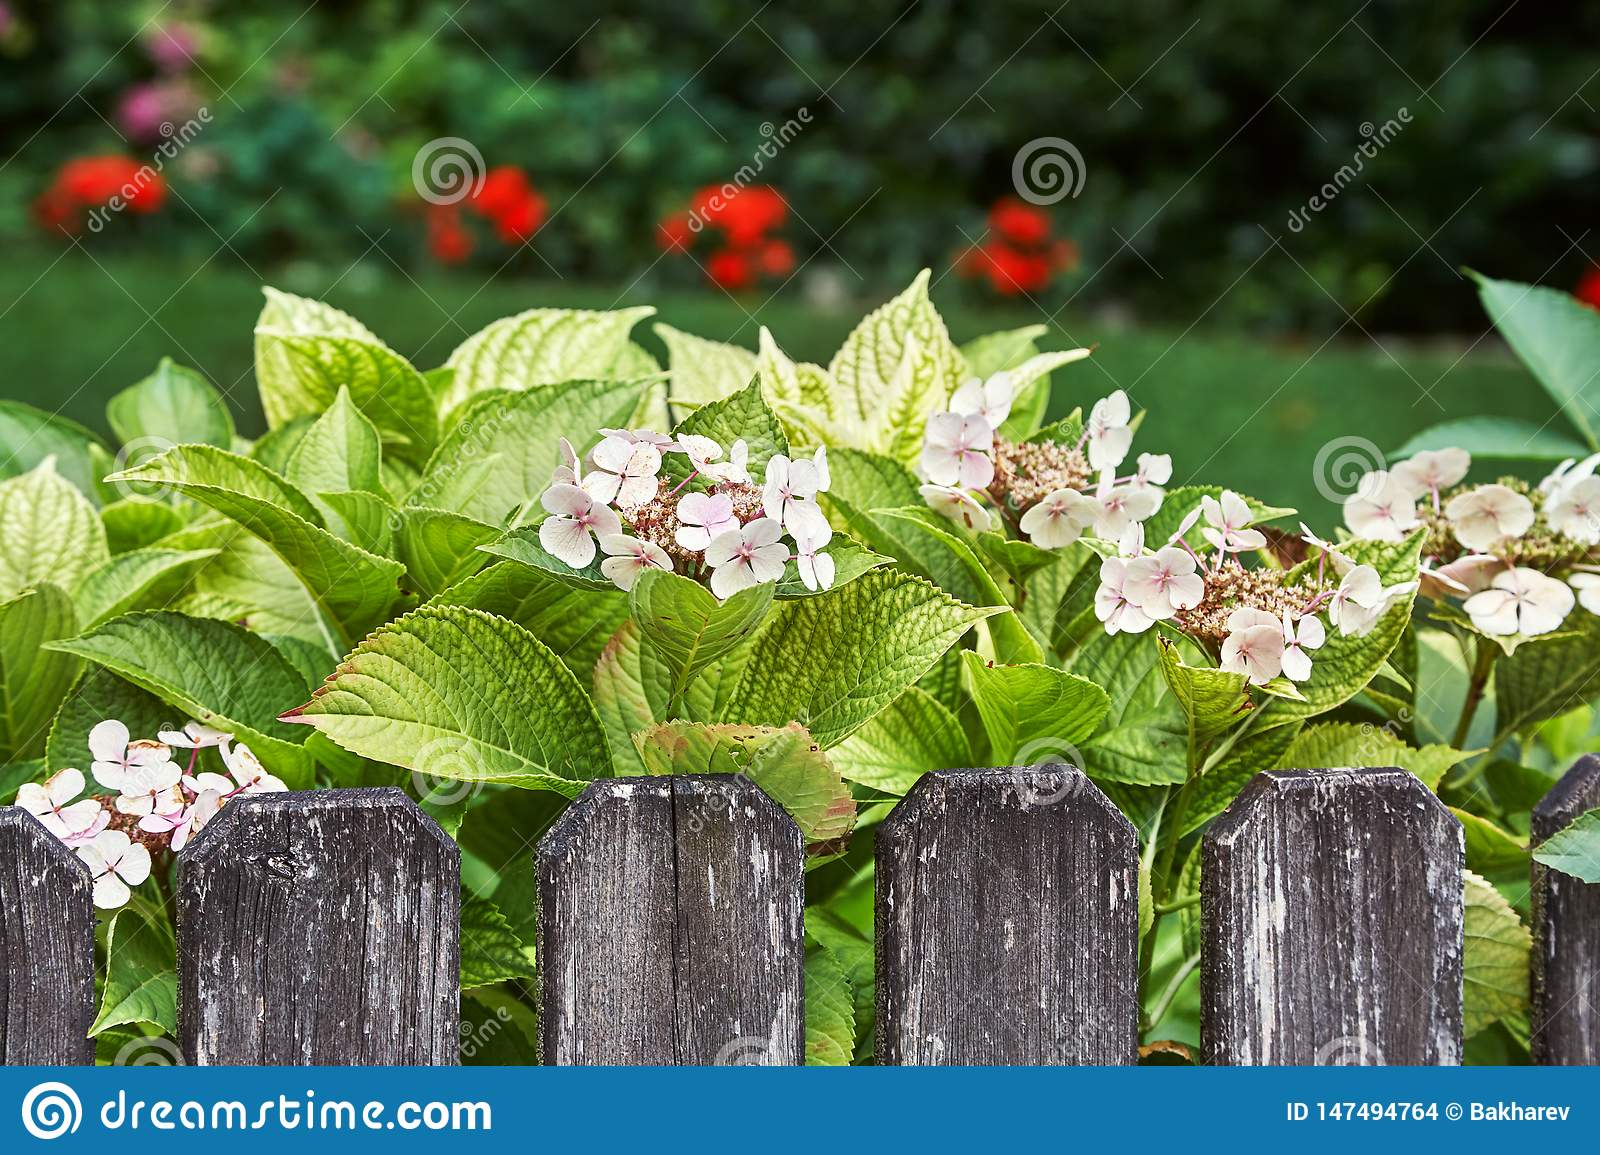 Tender Small Flowers Decorating A Wooden Garden Fence Stock Photo